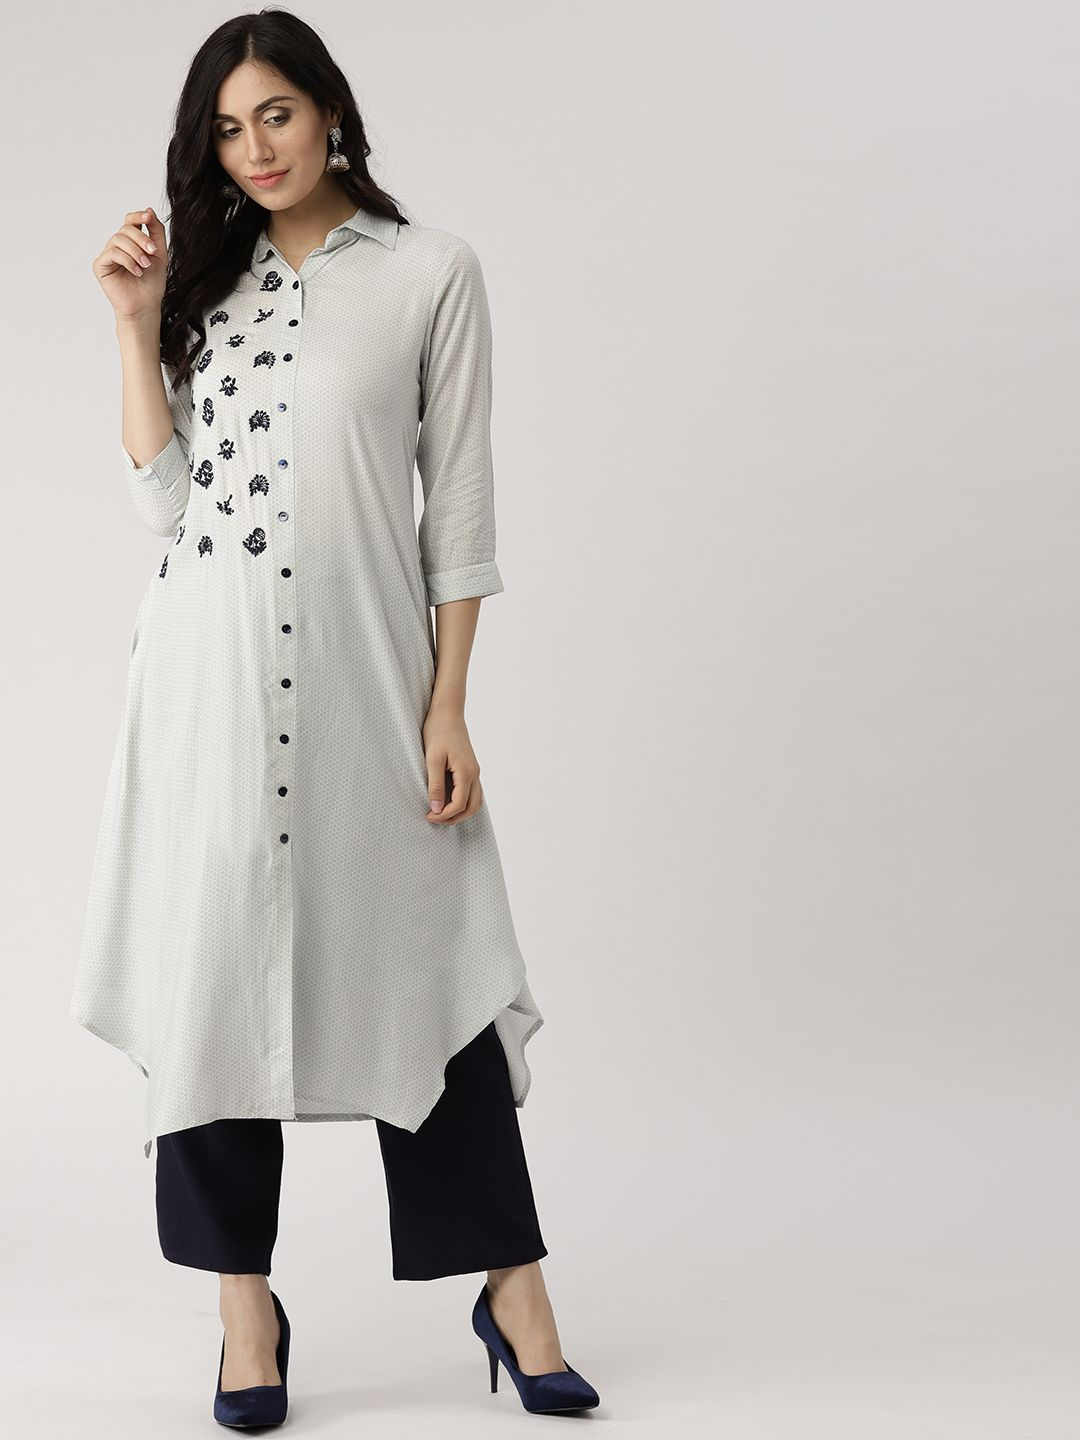 a1eecf19 #offwhite#stylist#shirtcollar#printed Shirt Style Kurti, Pakistani Fashion  Casual,